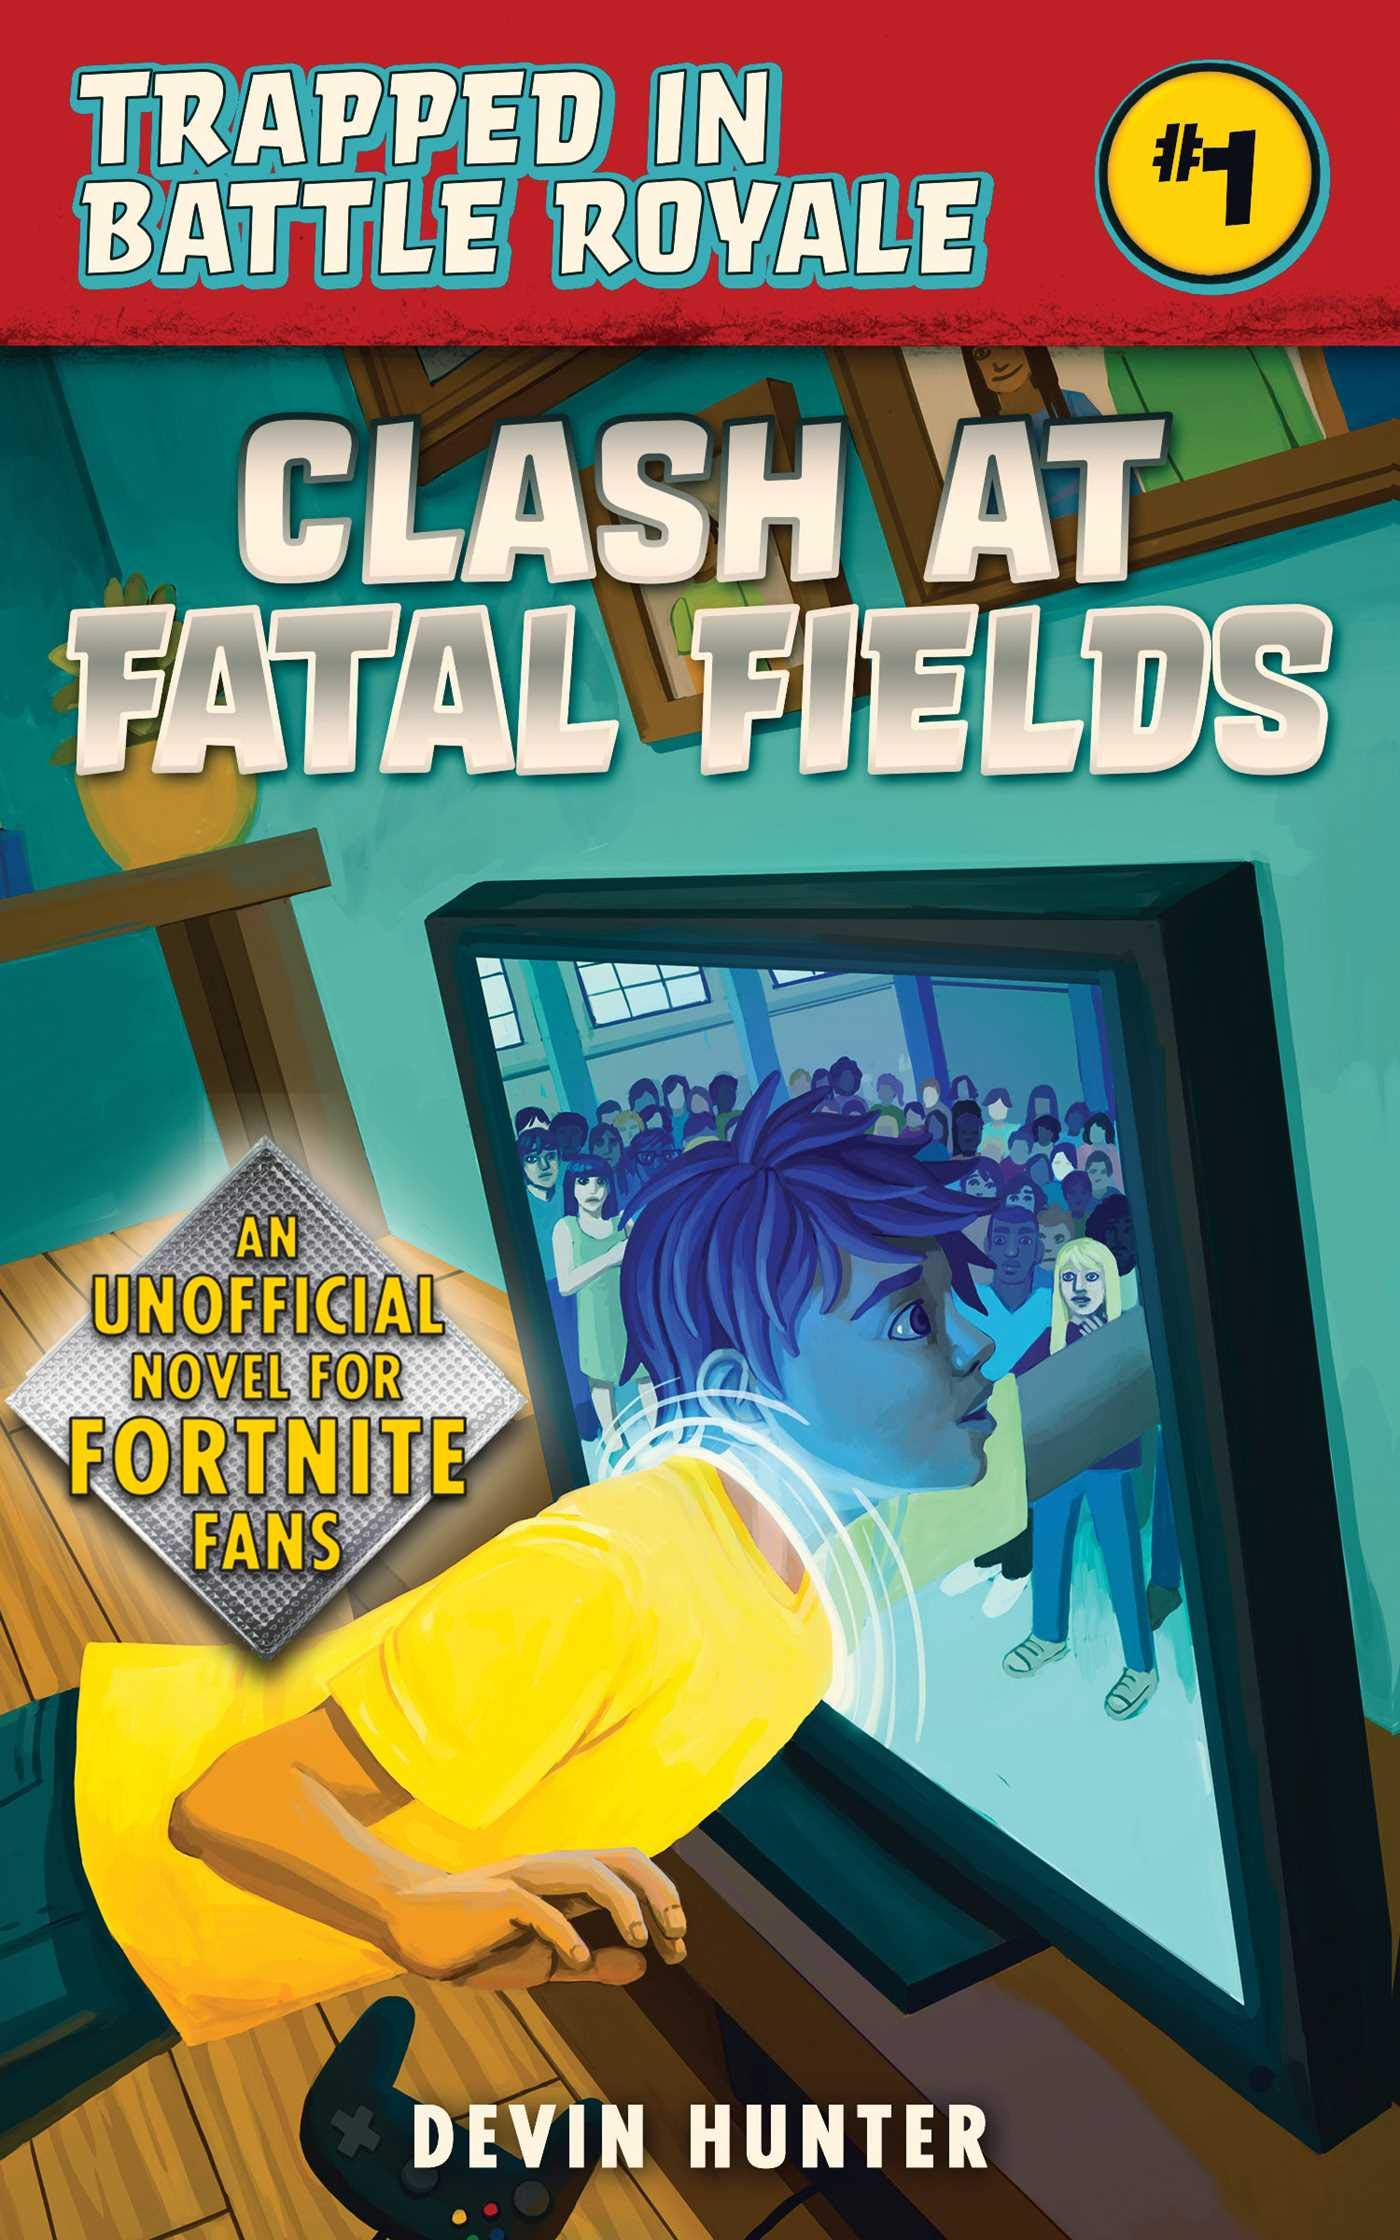 Clash At Fatal Fields: An Unofficial Novel of Fortnite (Trapped In